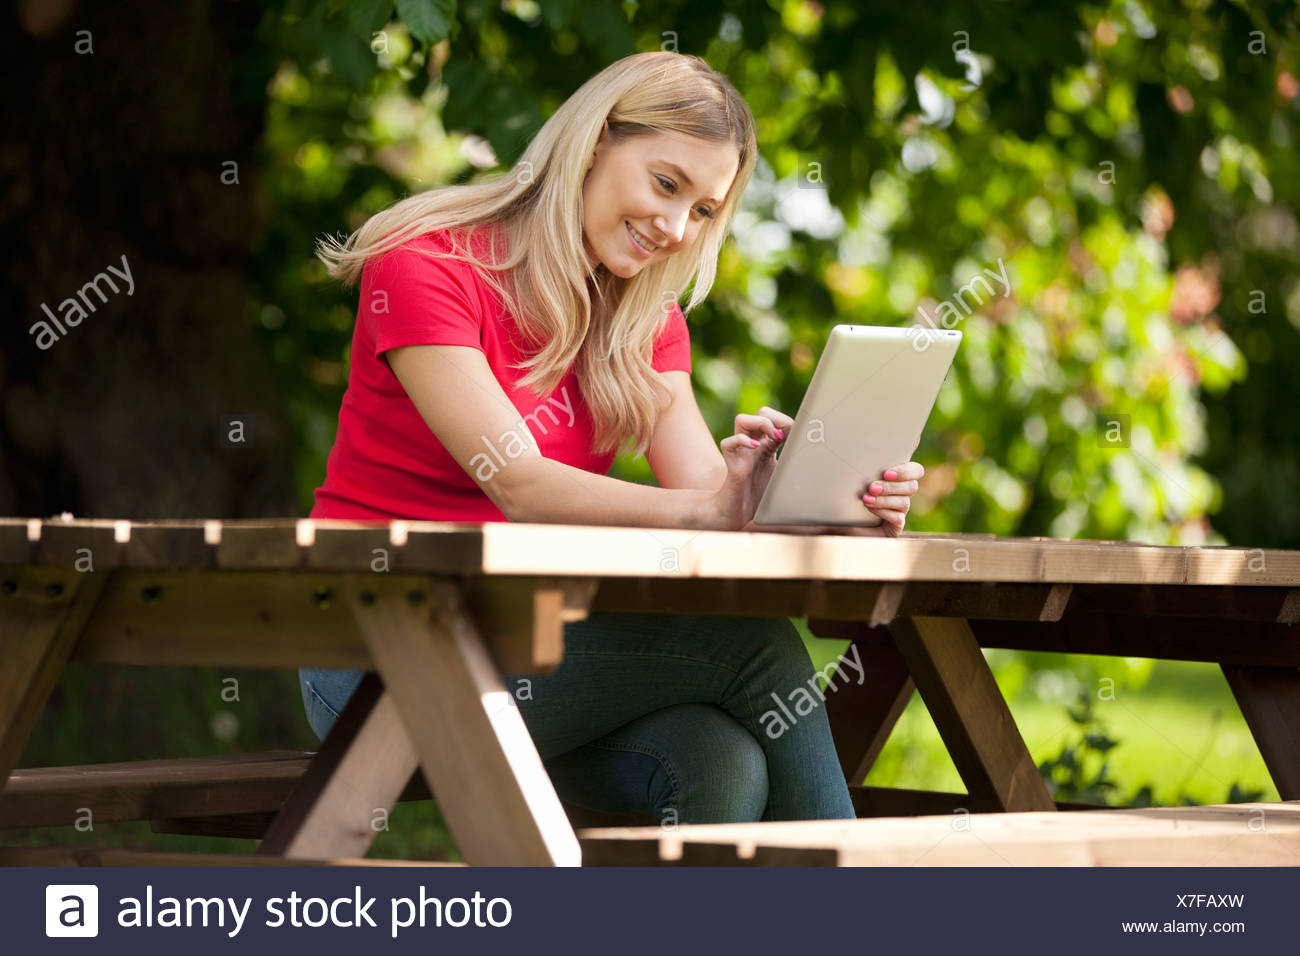 A young woman sitting at a bench using a digital tablet, smiling - Stock Image